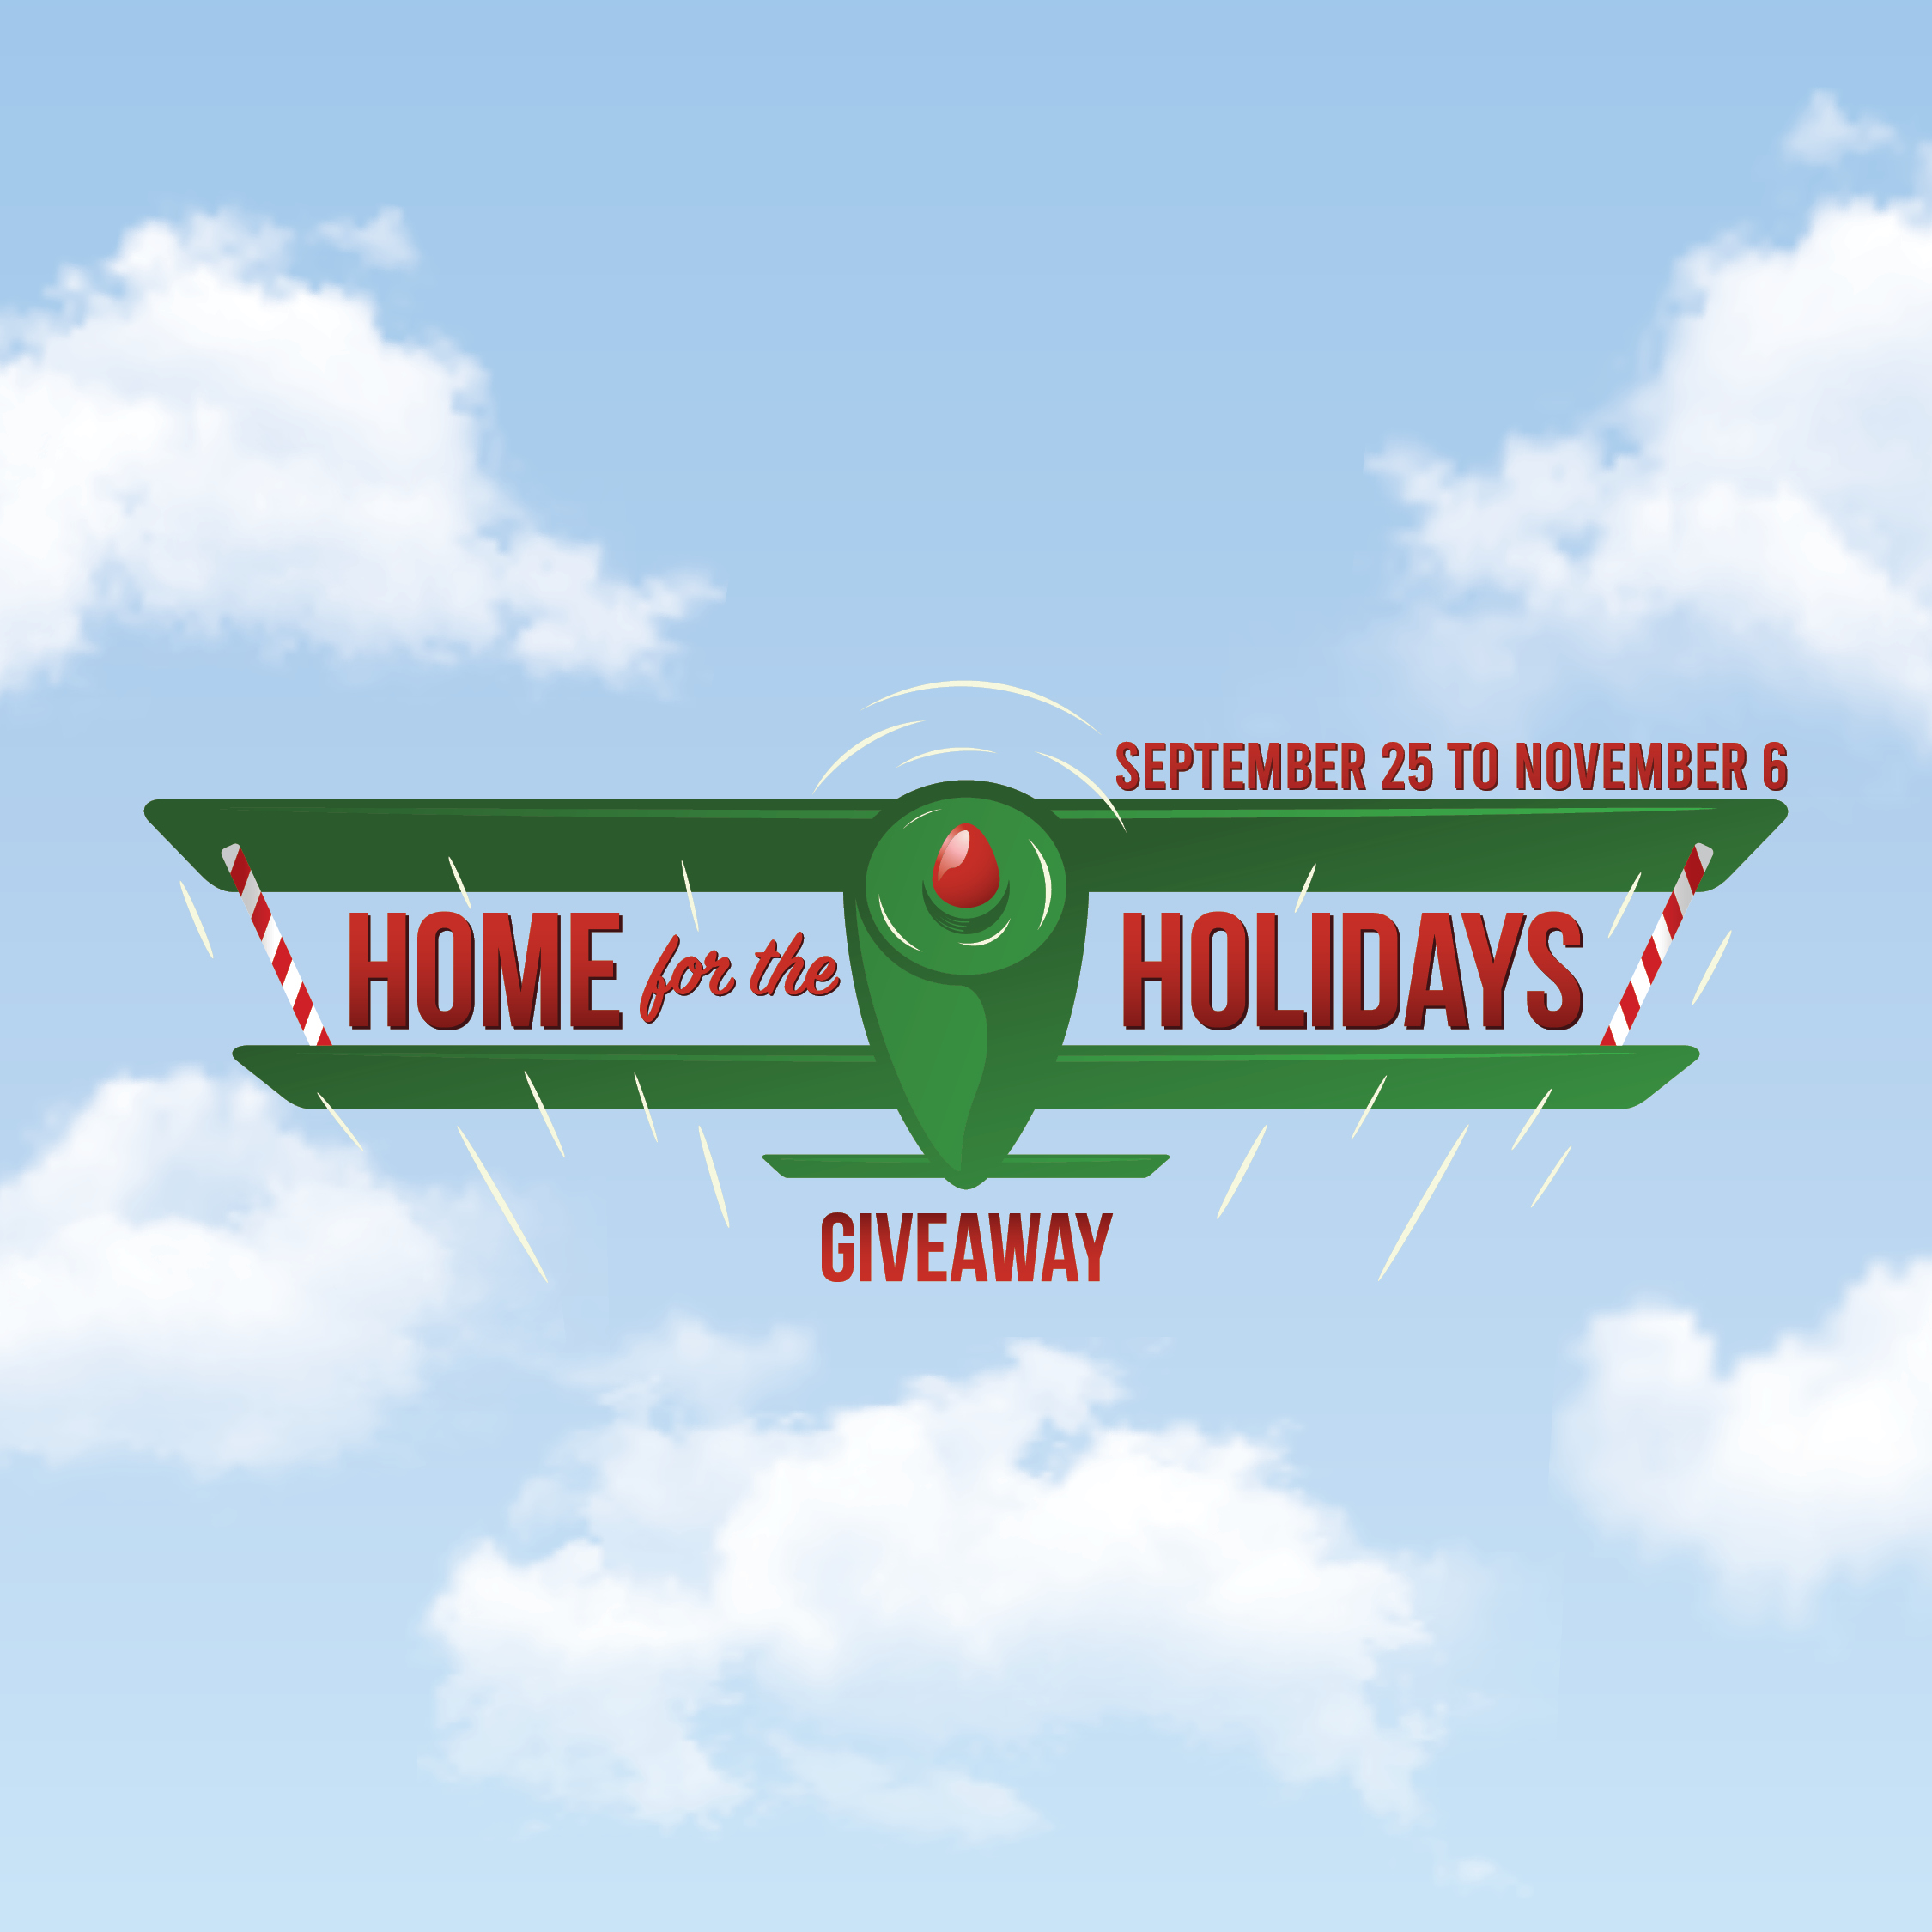 Home for the Holidays 2019 Giveaway